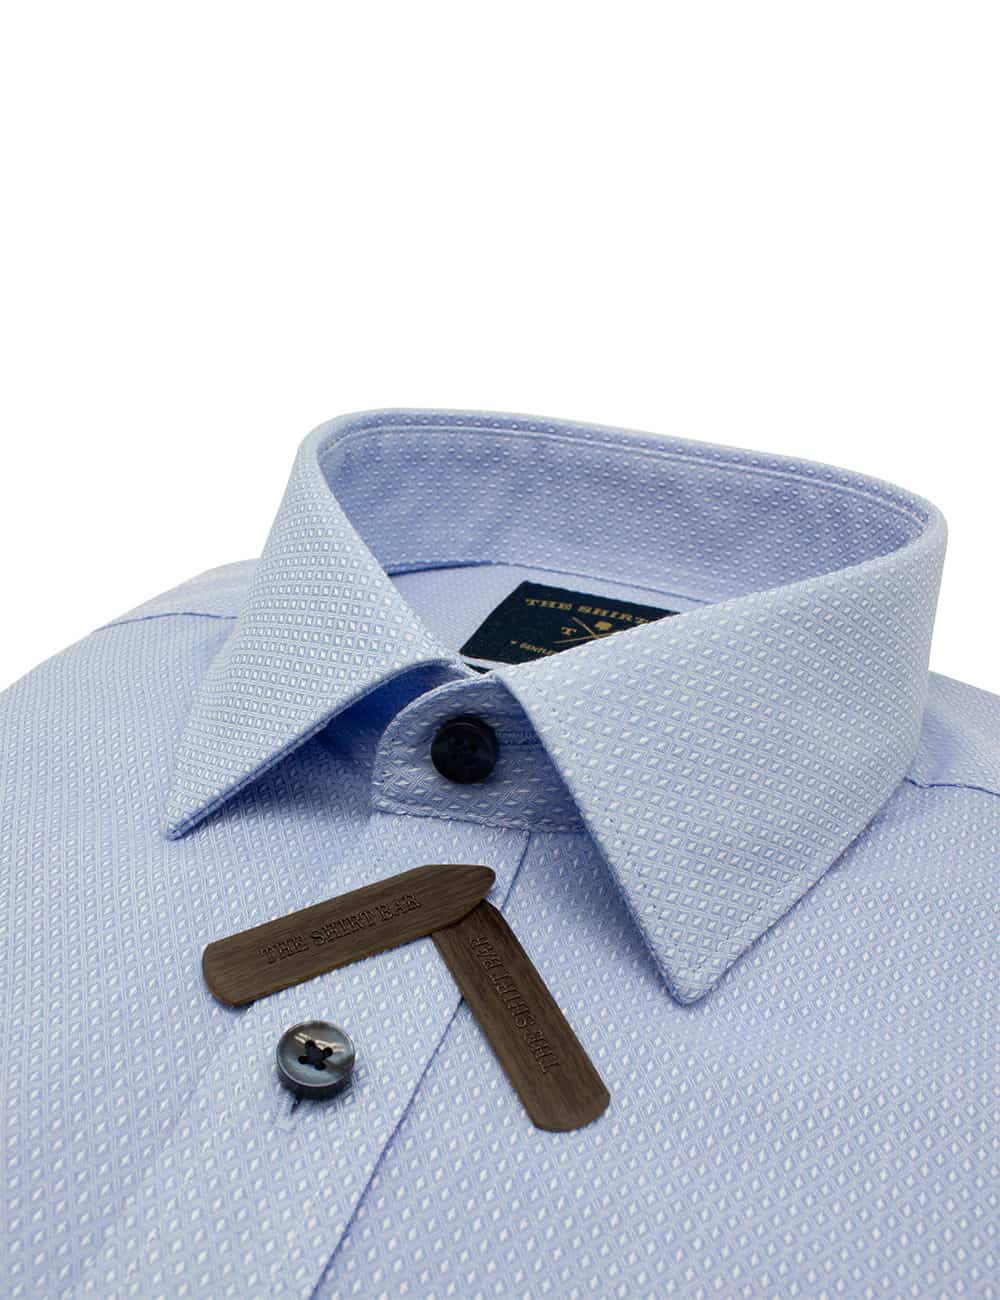 TF Sky Blue with Diamond Spill Resist Cotton Blend Wrinkle-Resistant Long Sleeve Single Cuff Shirt TF2A5.14